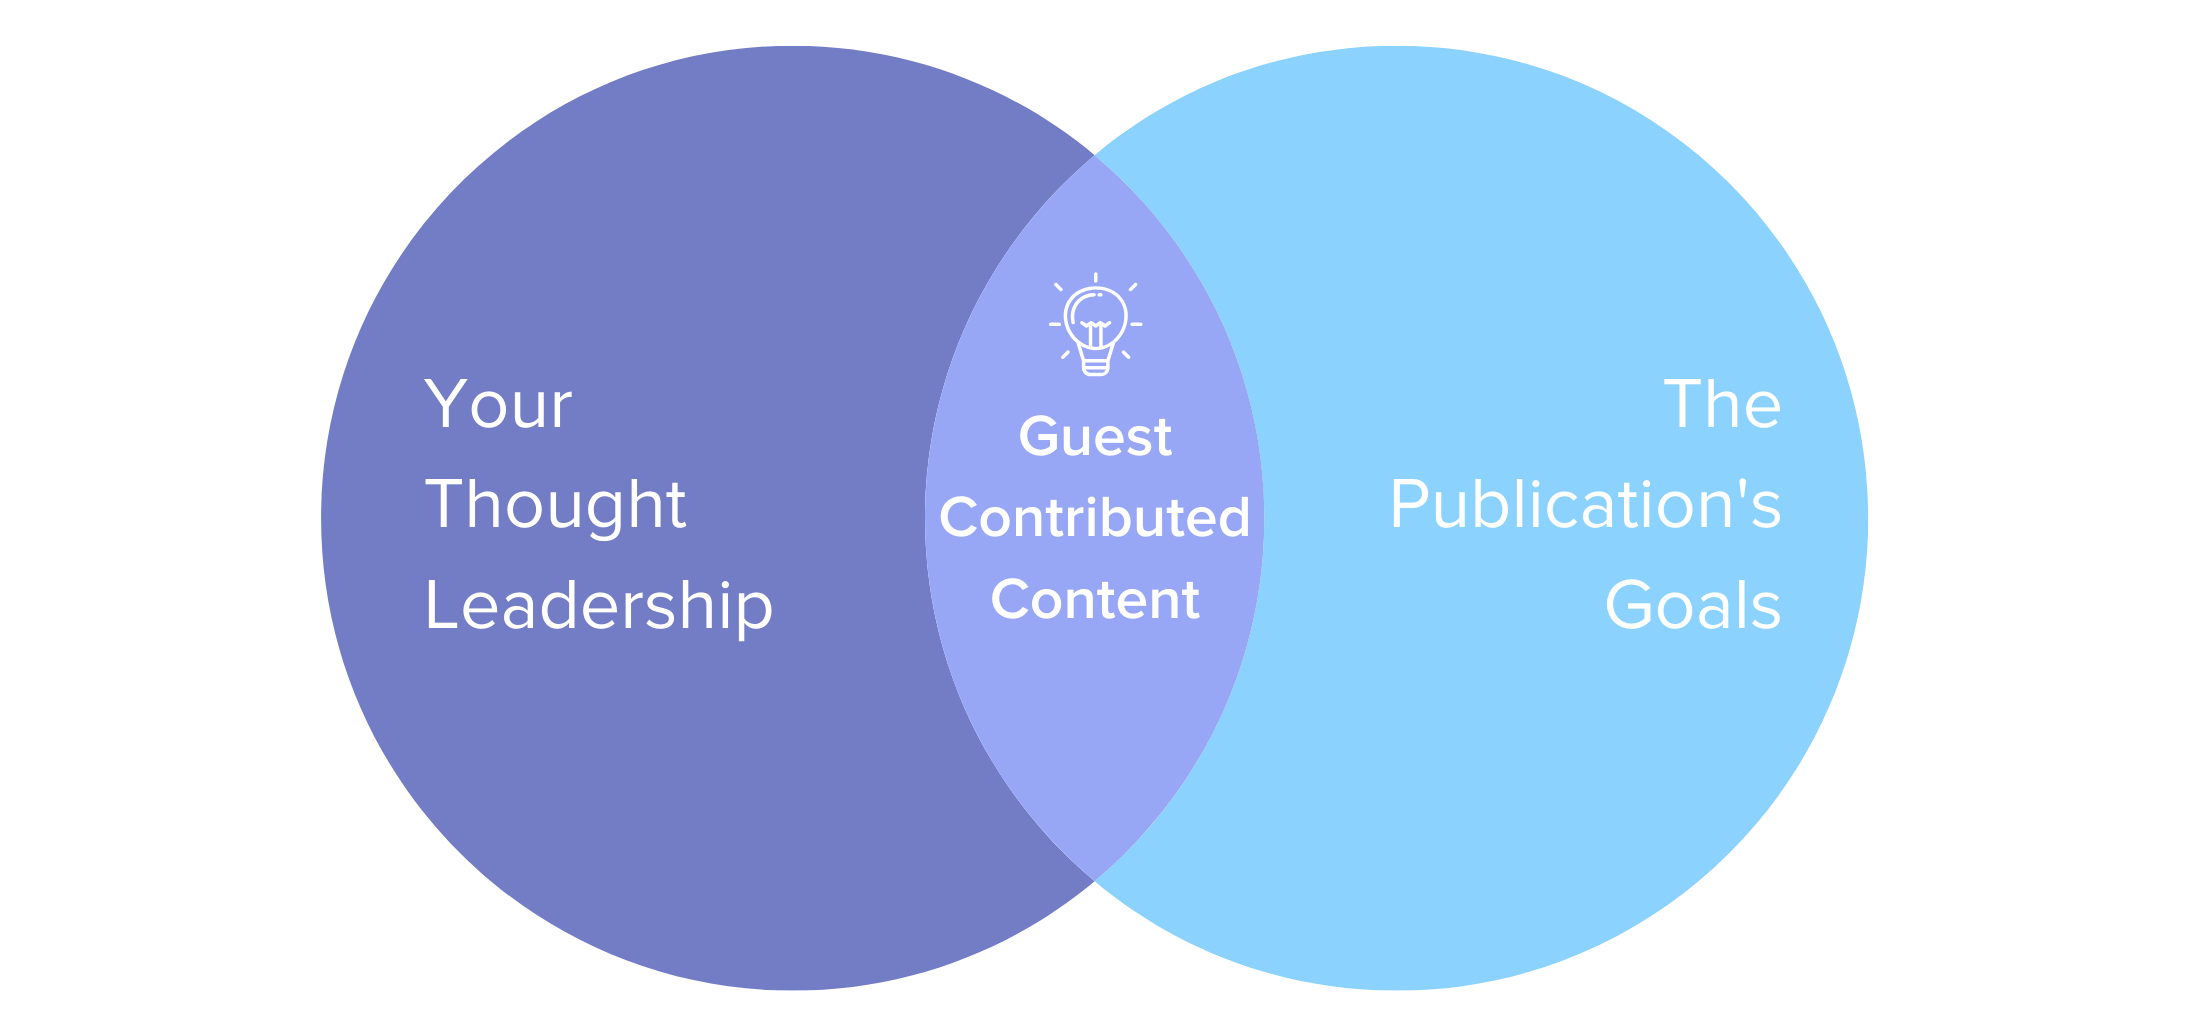 Guest-contributed content is the middle ground between your thought leadership and publications' goals